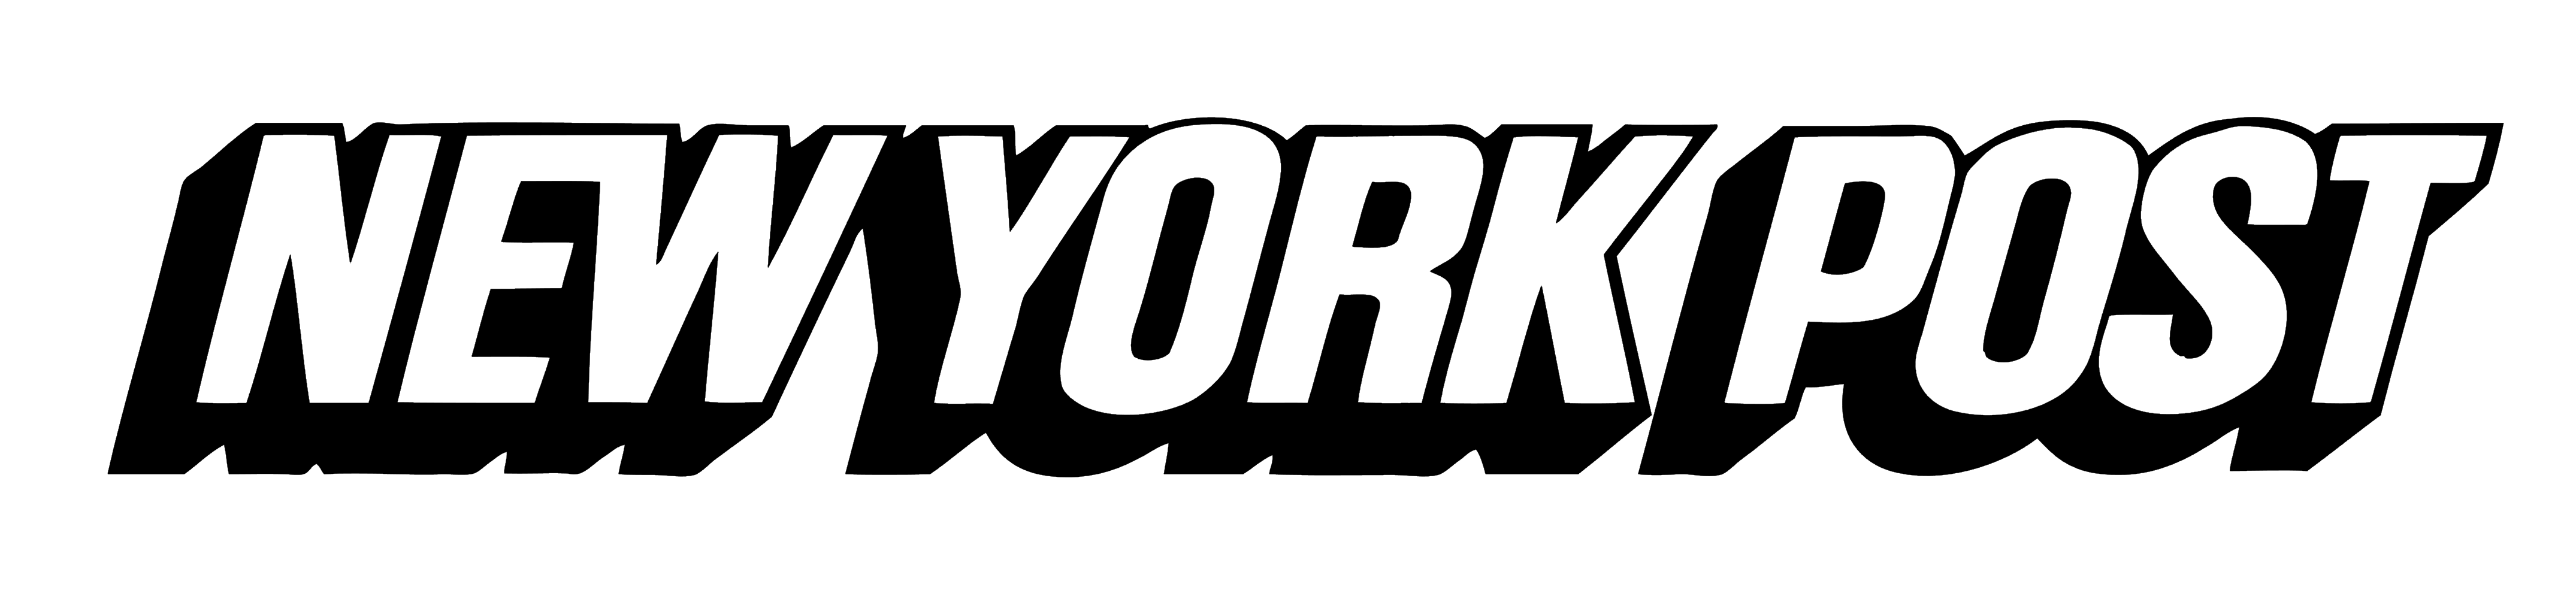 New York Post Logo - Muse Paintbar